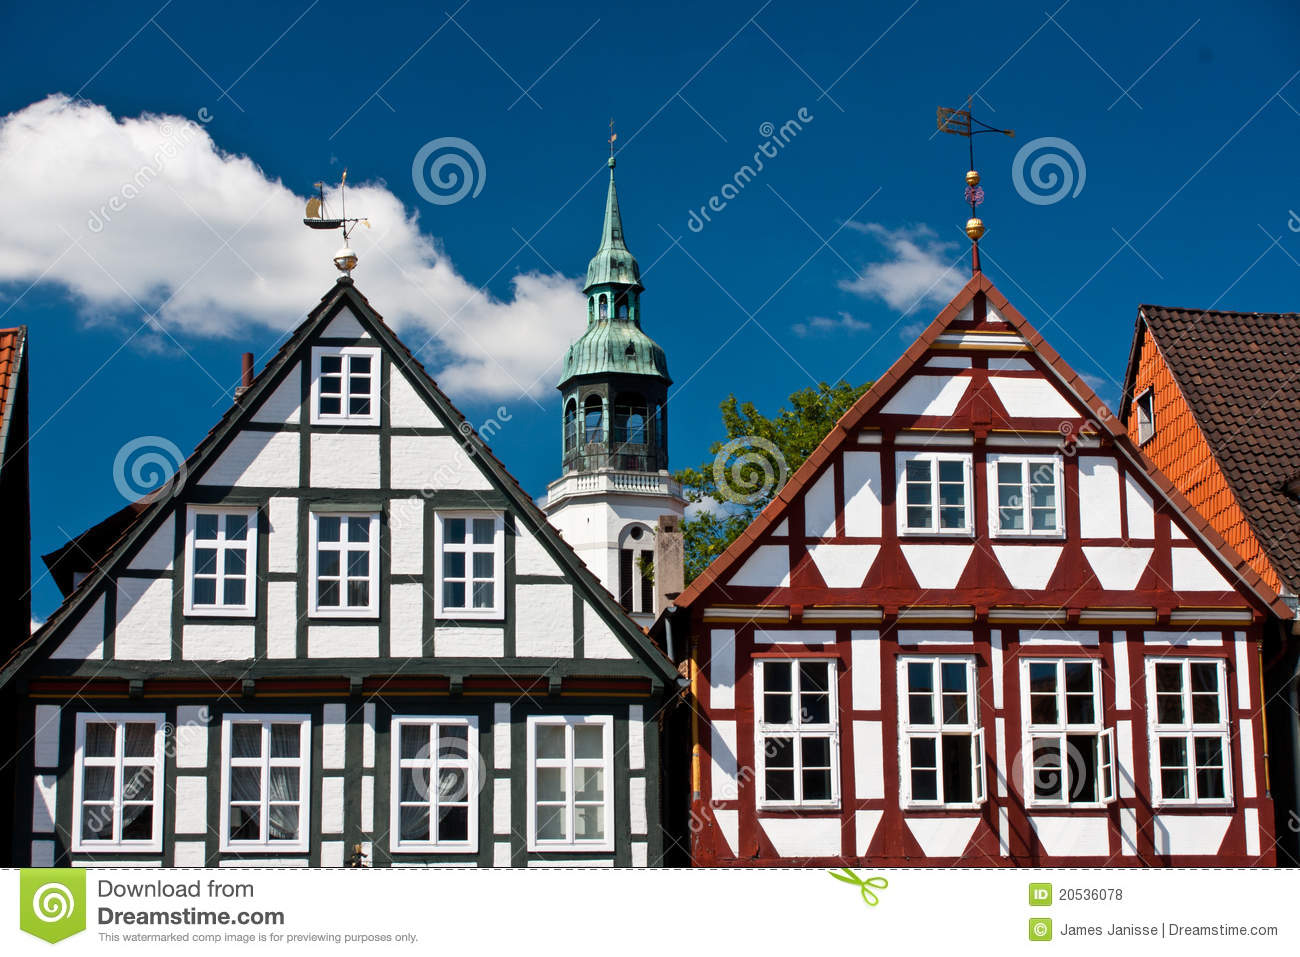 Traditioneel hout fram huis in celle duitsland stock foto afbeelding 20536078 - Huis hout ...